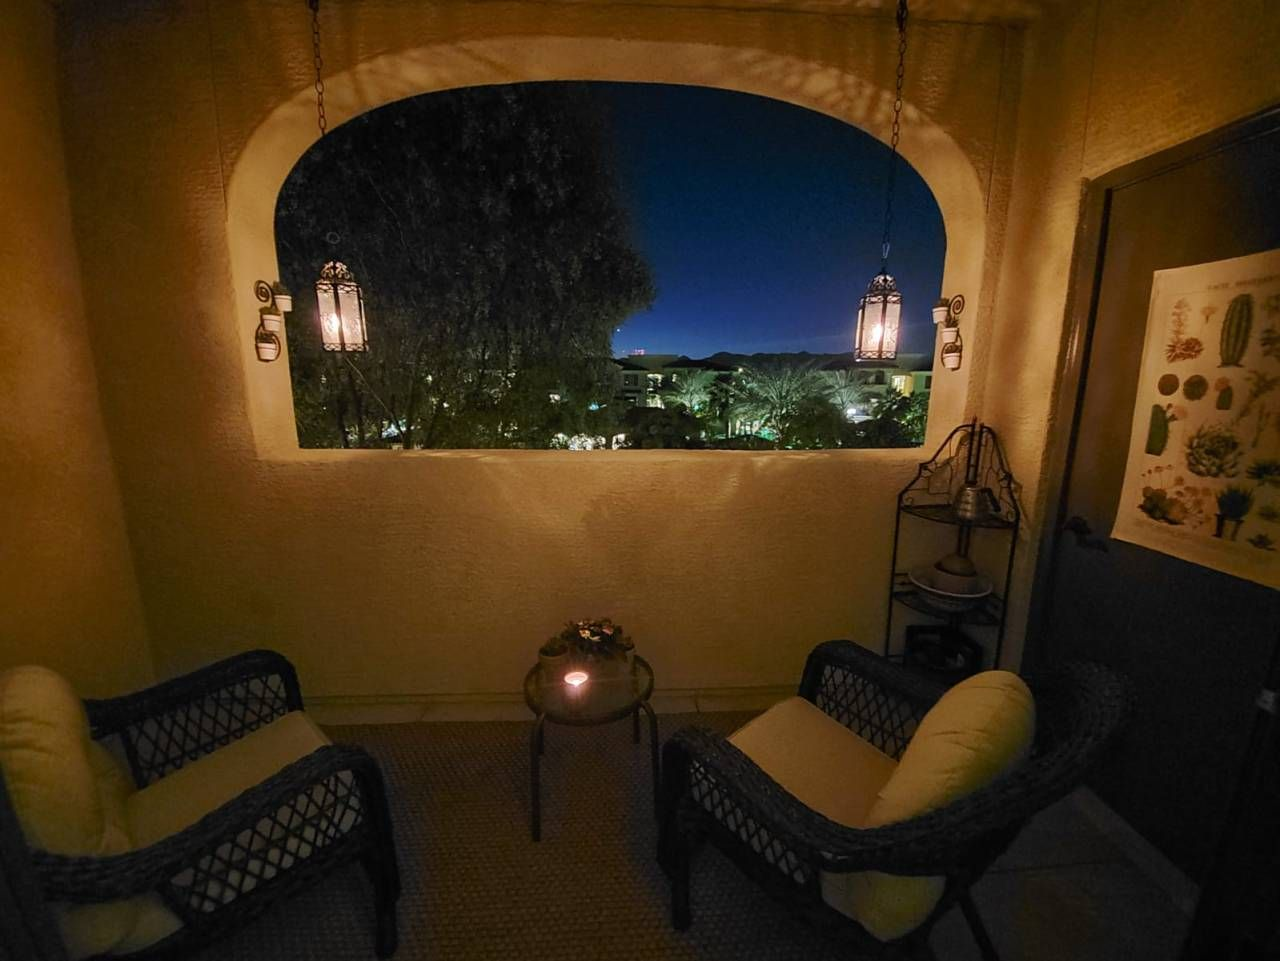 We Hung Candle Lit Lanterns From Our Apartment Patio Ceiling Phoenix Az In 2020 Cozy Place Interior Design Inspiration Hanging Candles